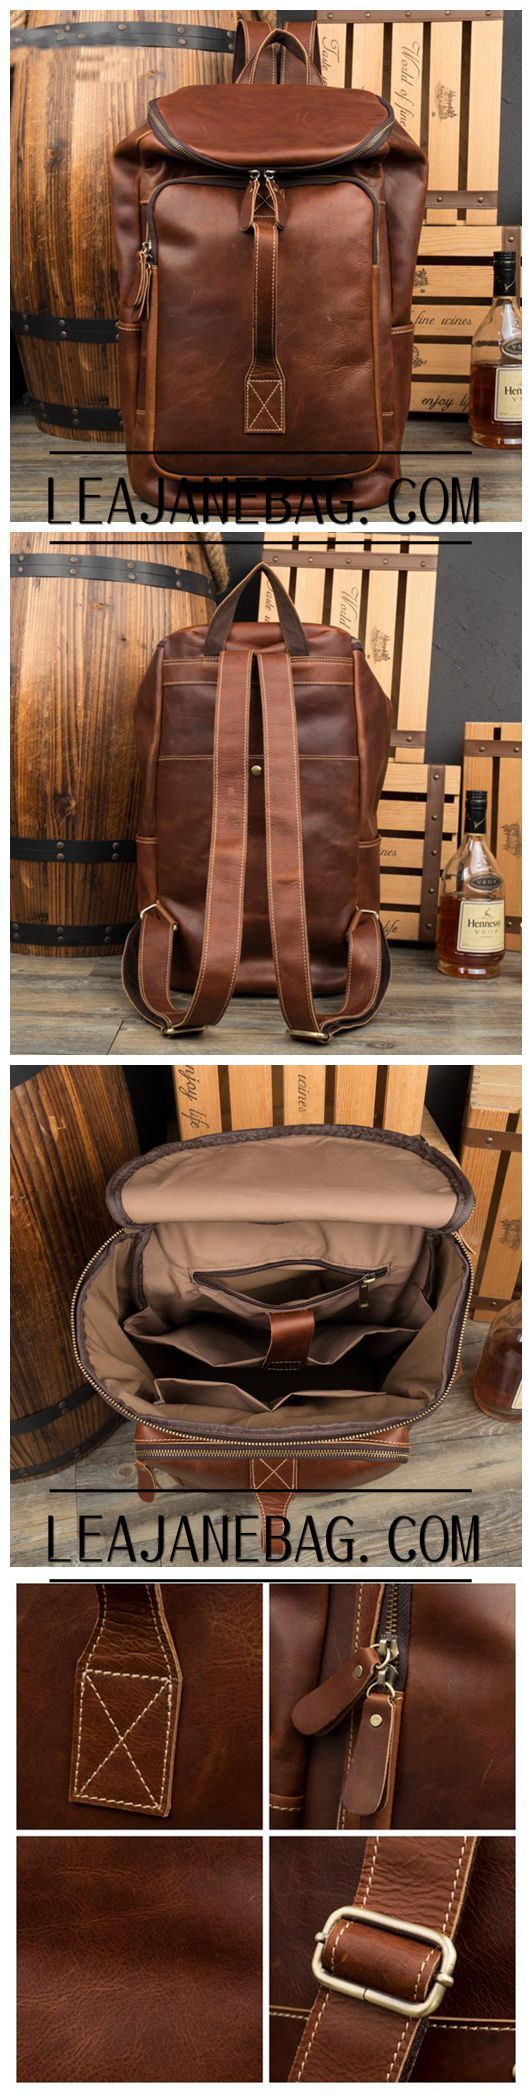 Leather Backpack for Traveling, Fashion Backpack in Italian Genuine Leather,Handmade Backpack MS058